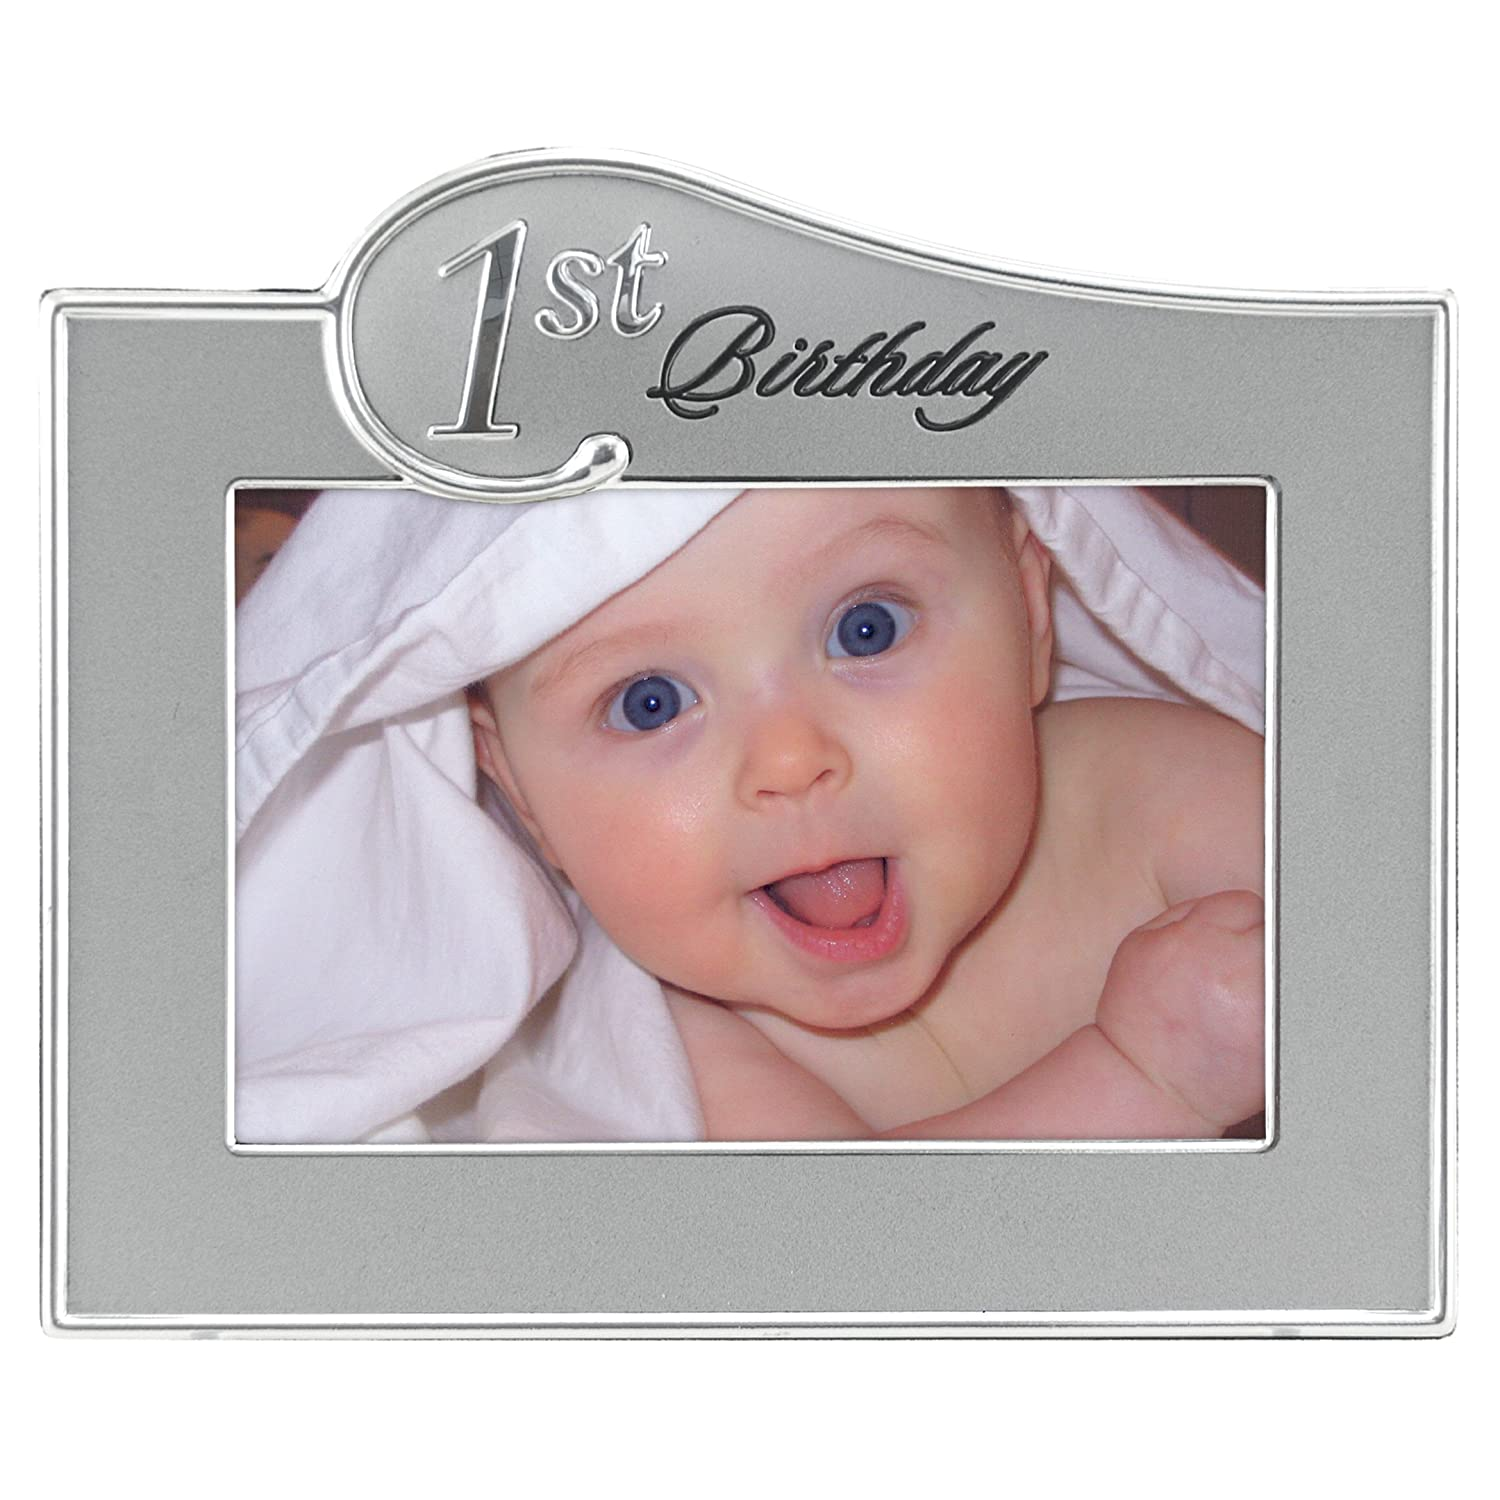 Malden 1st Birthday Two Tone Picture Frame, Sliver Malden International 5210-46